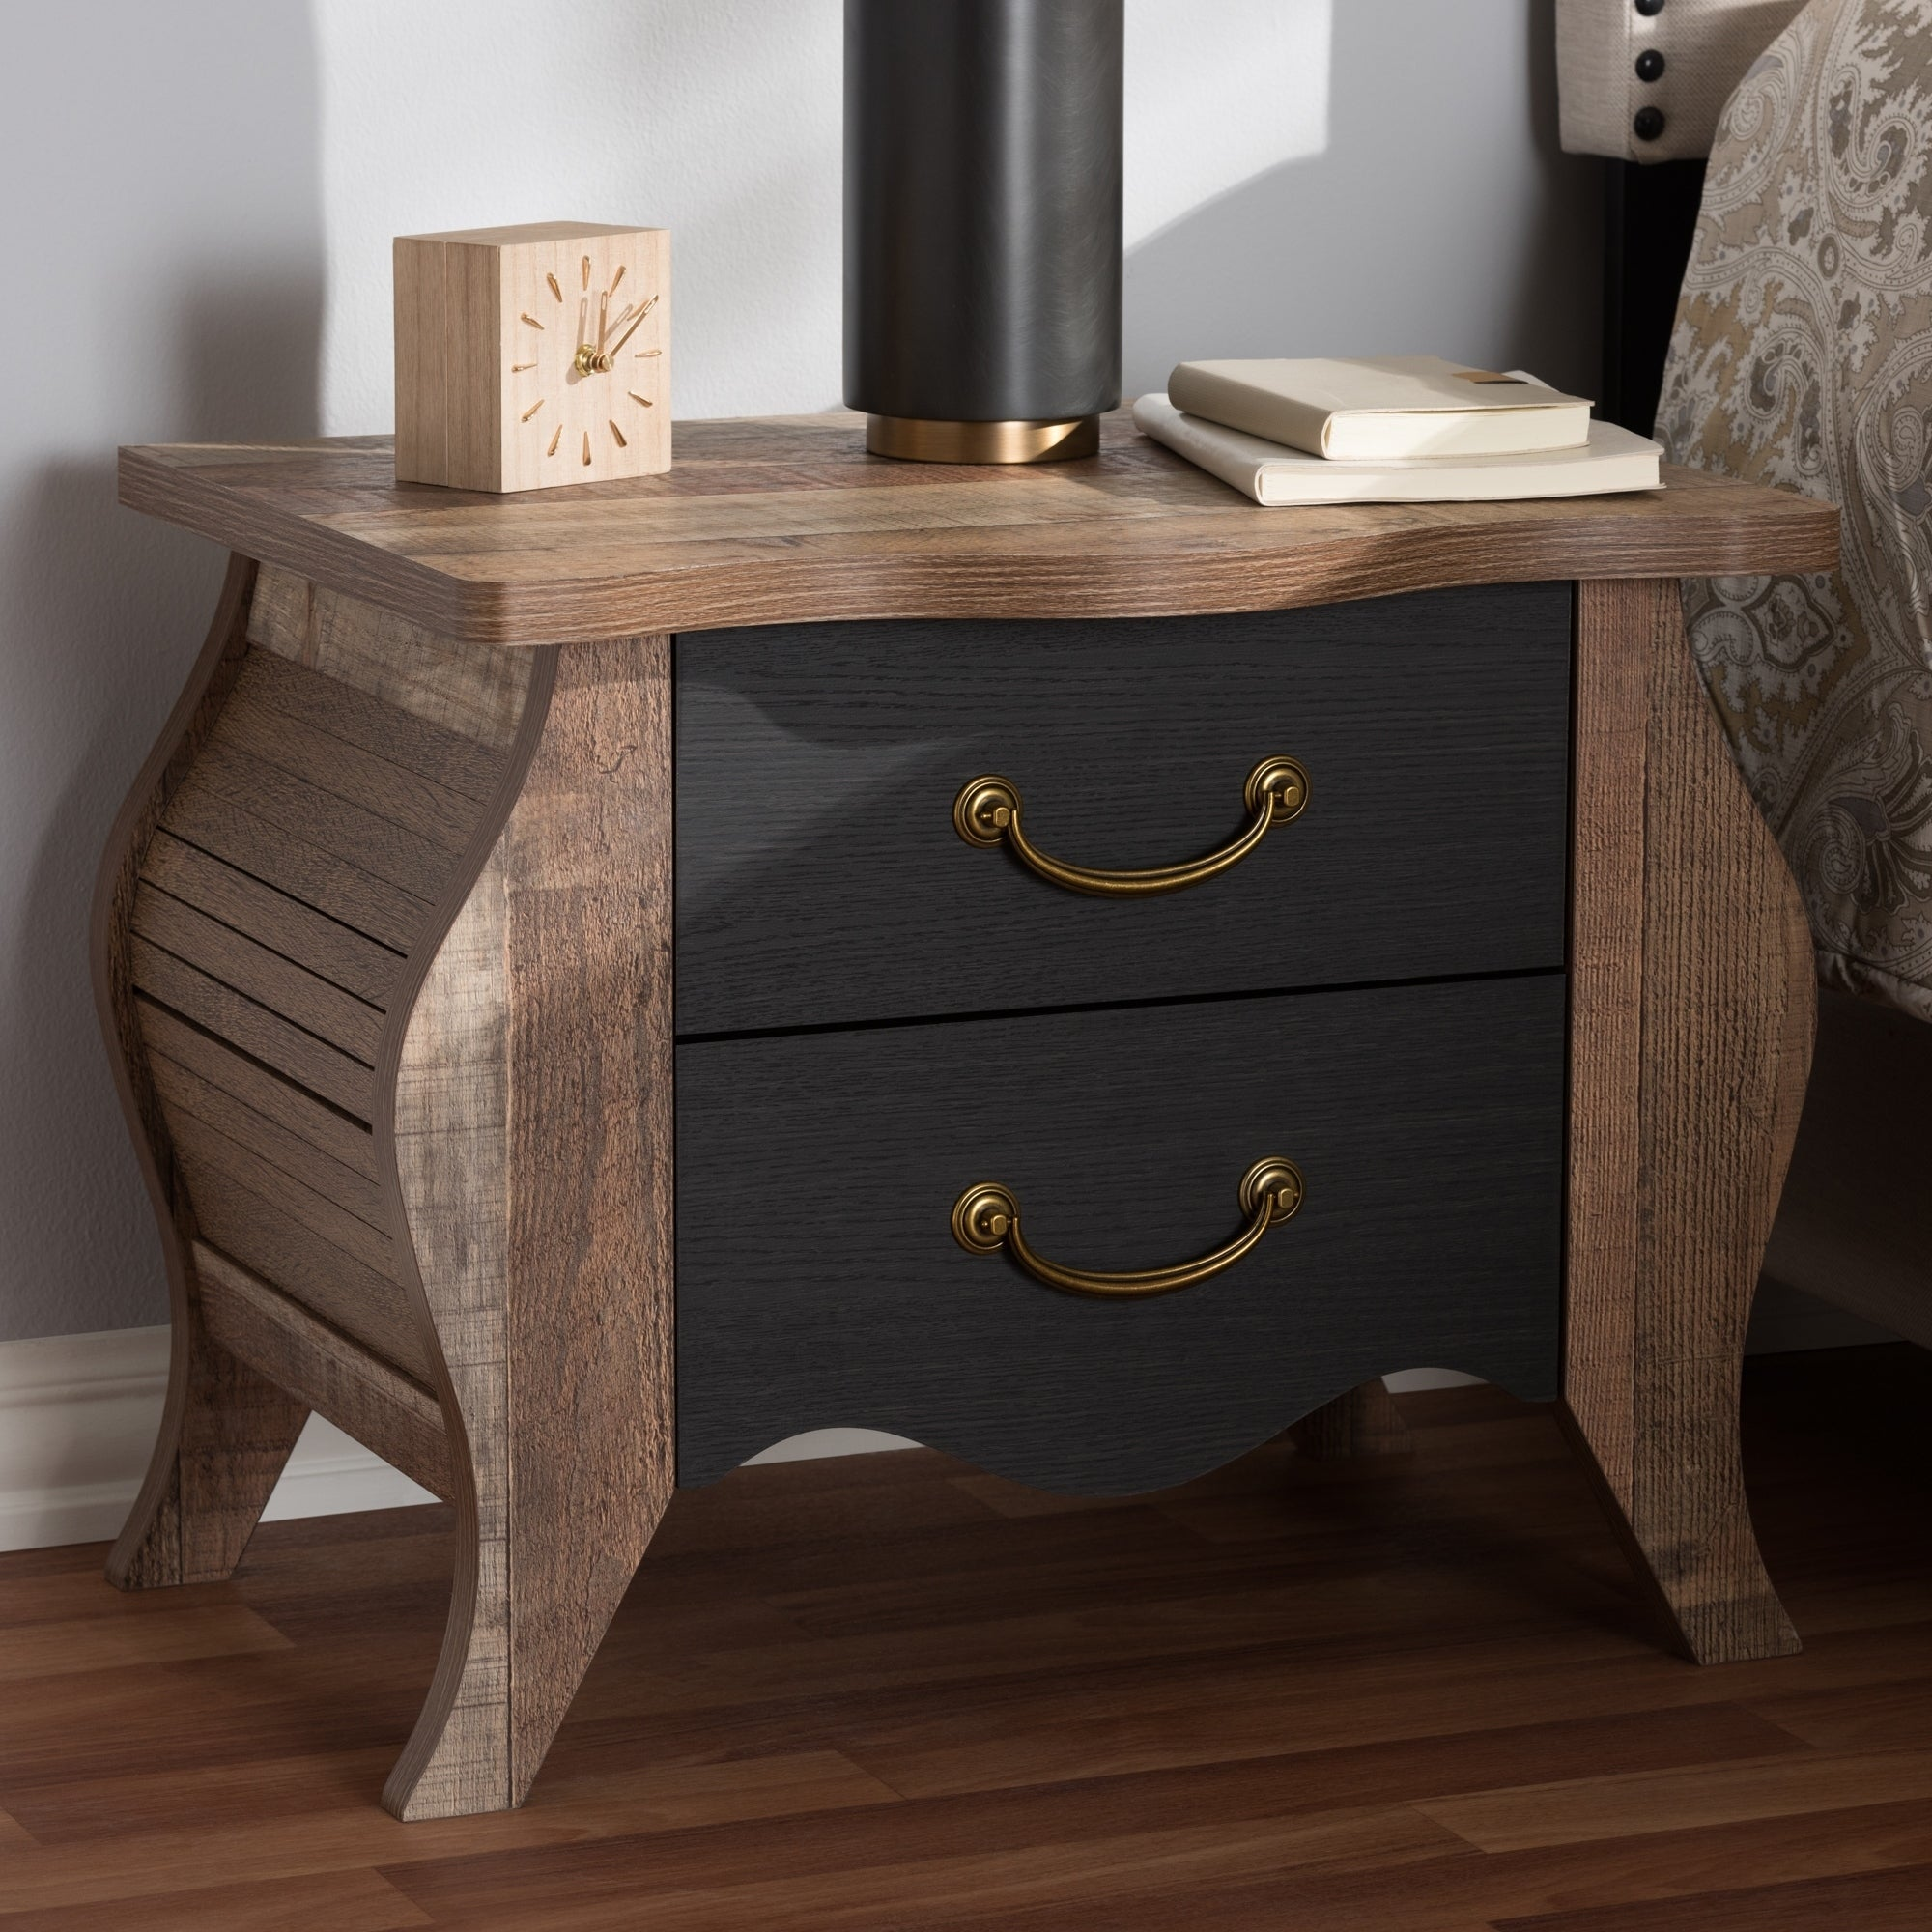 style oak country and romilly baxton studio pulls cottage cottages farmhouse black drawer finished wood chest